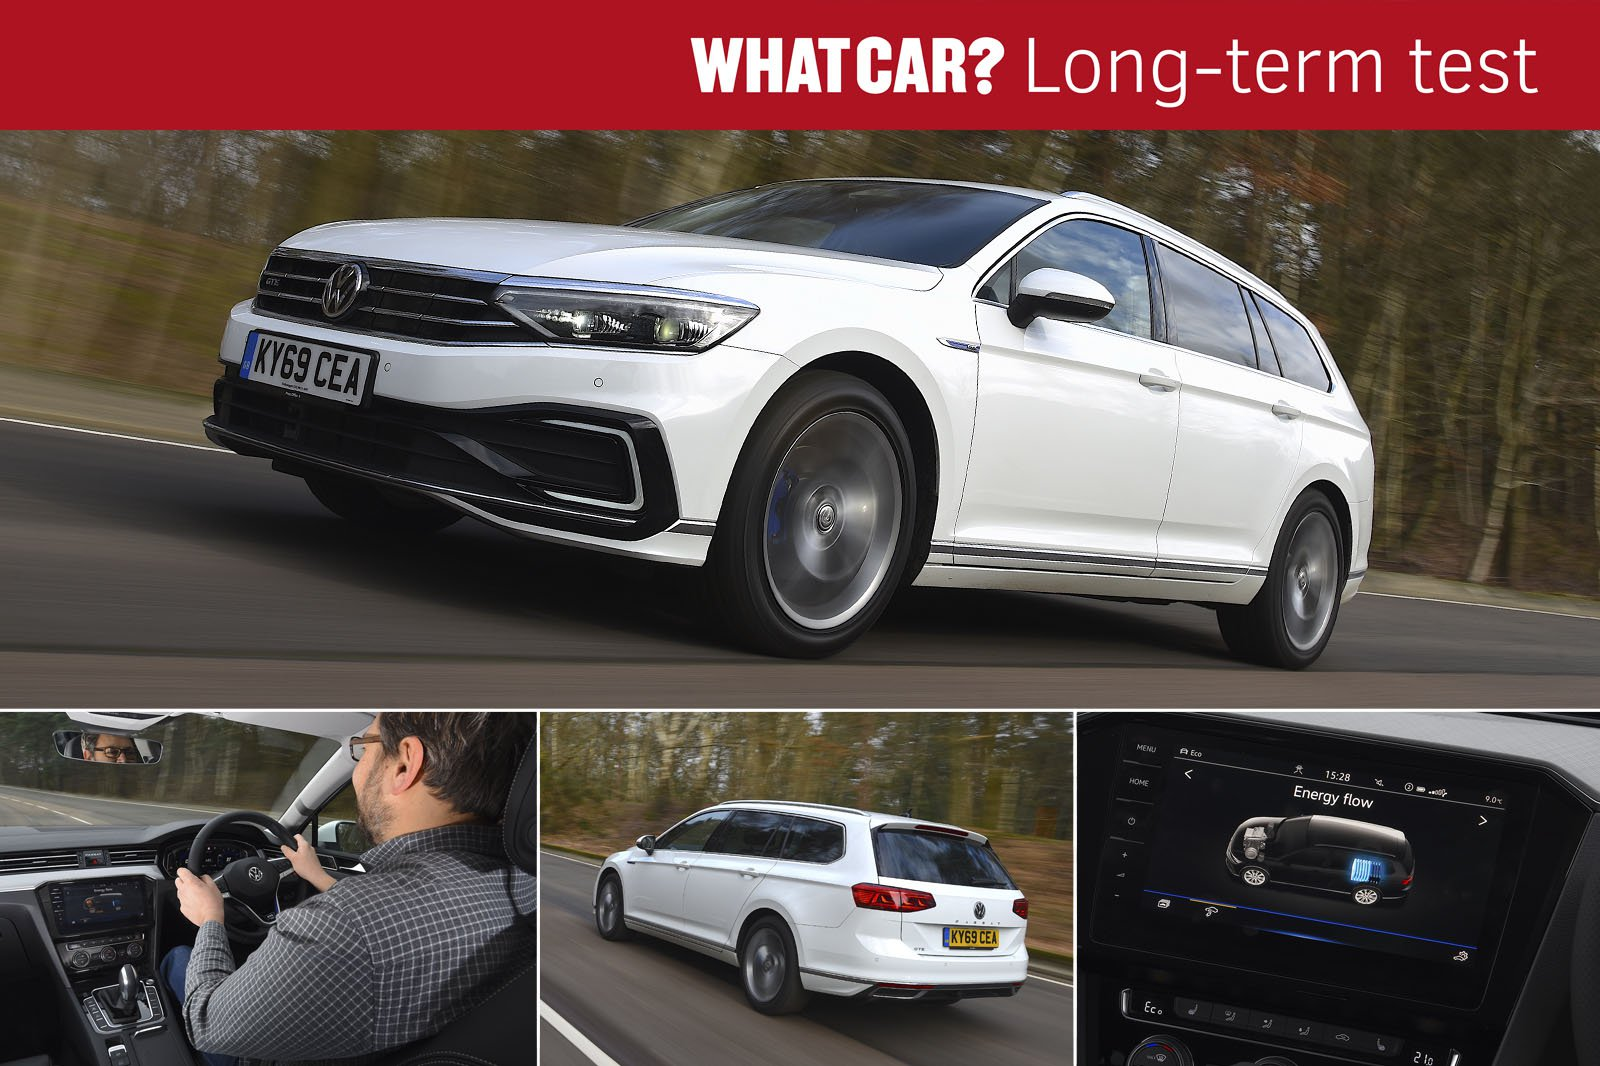 VW Passat long-term test review